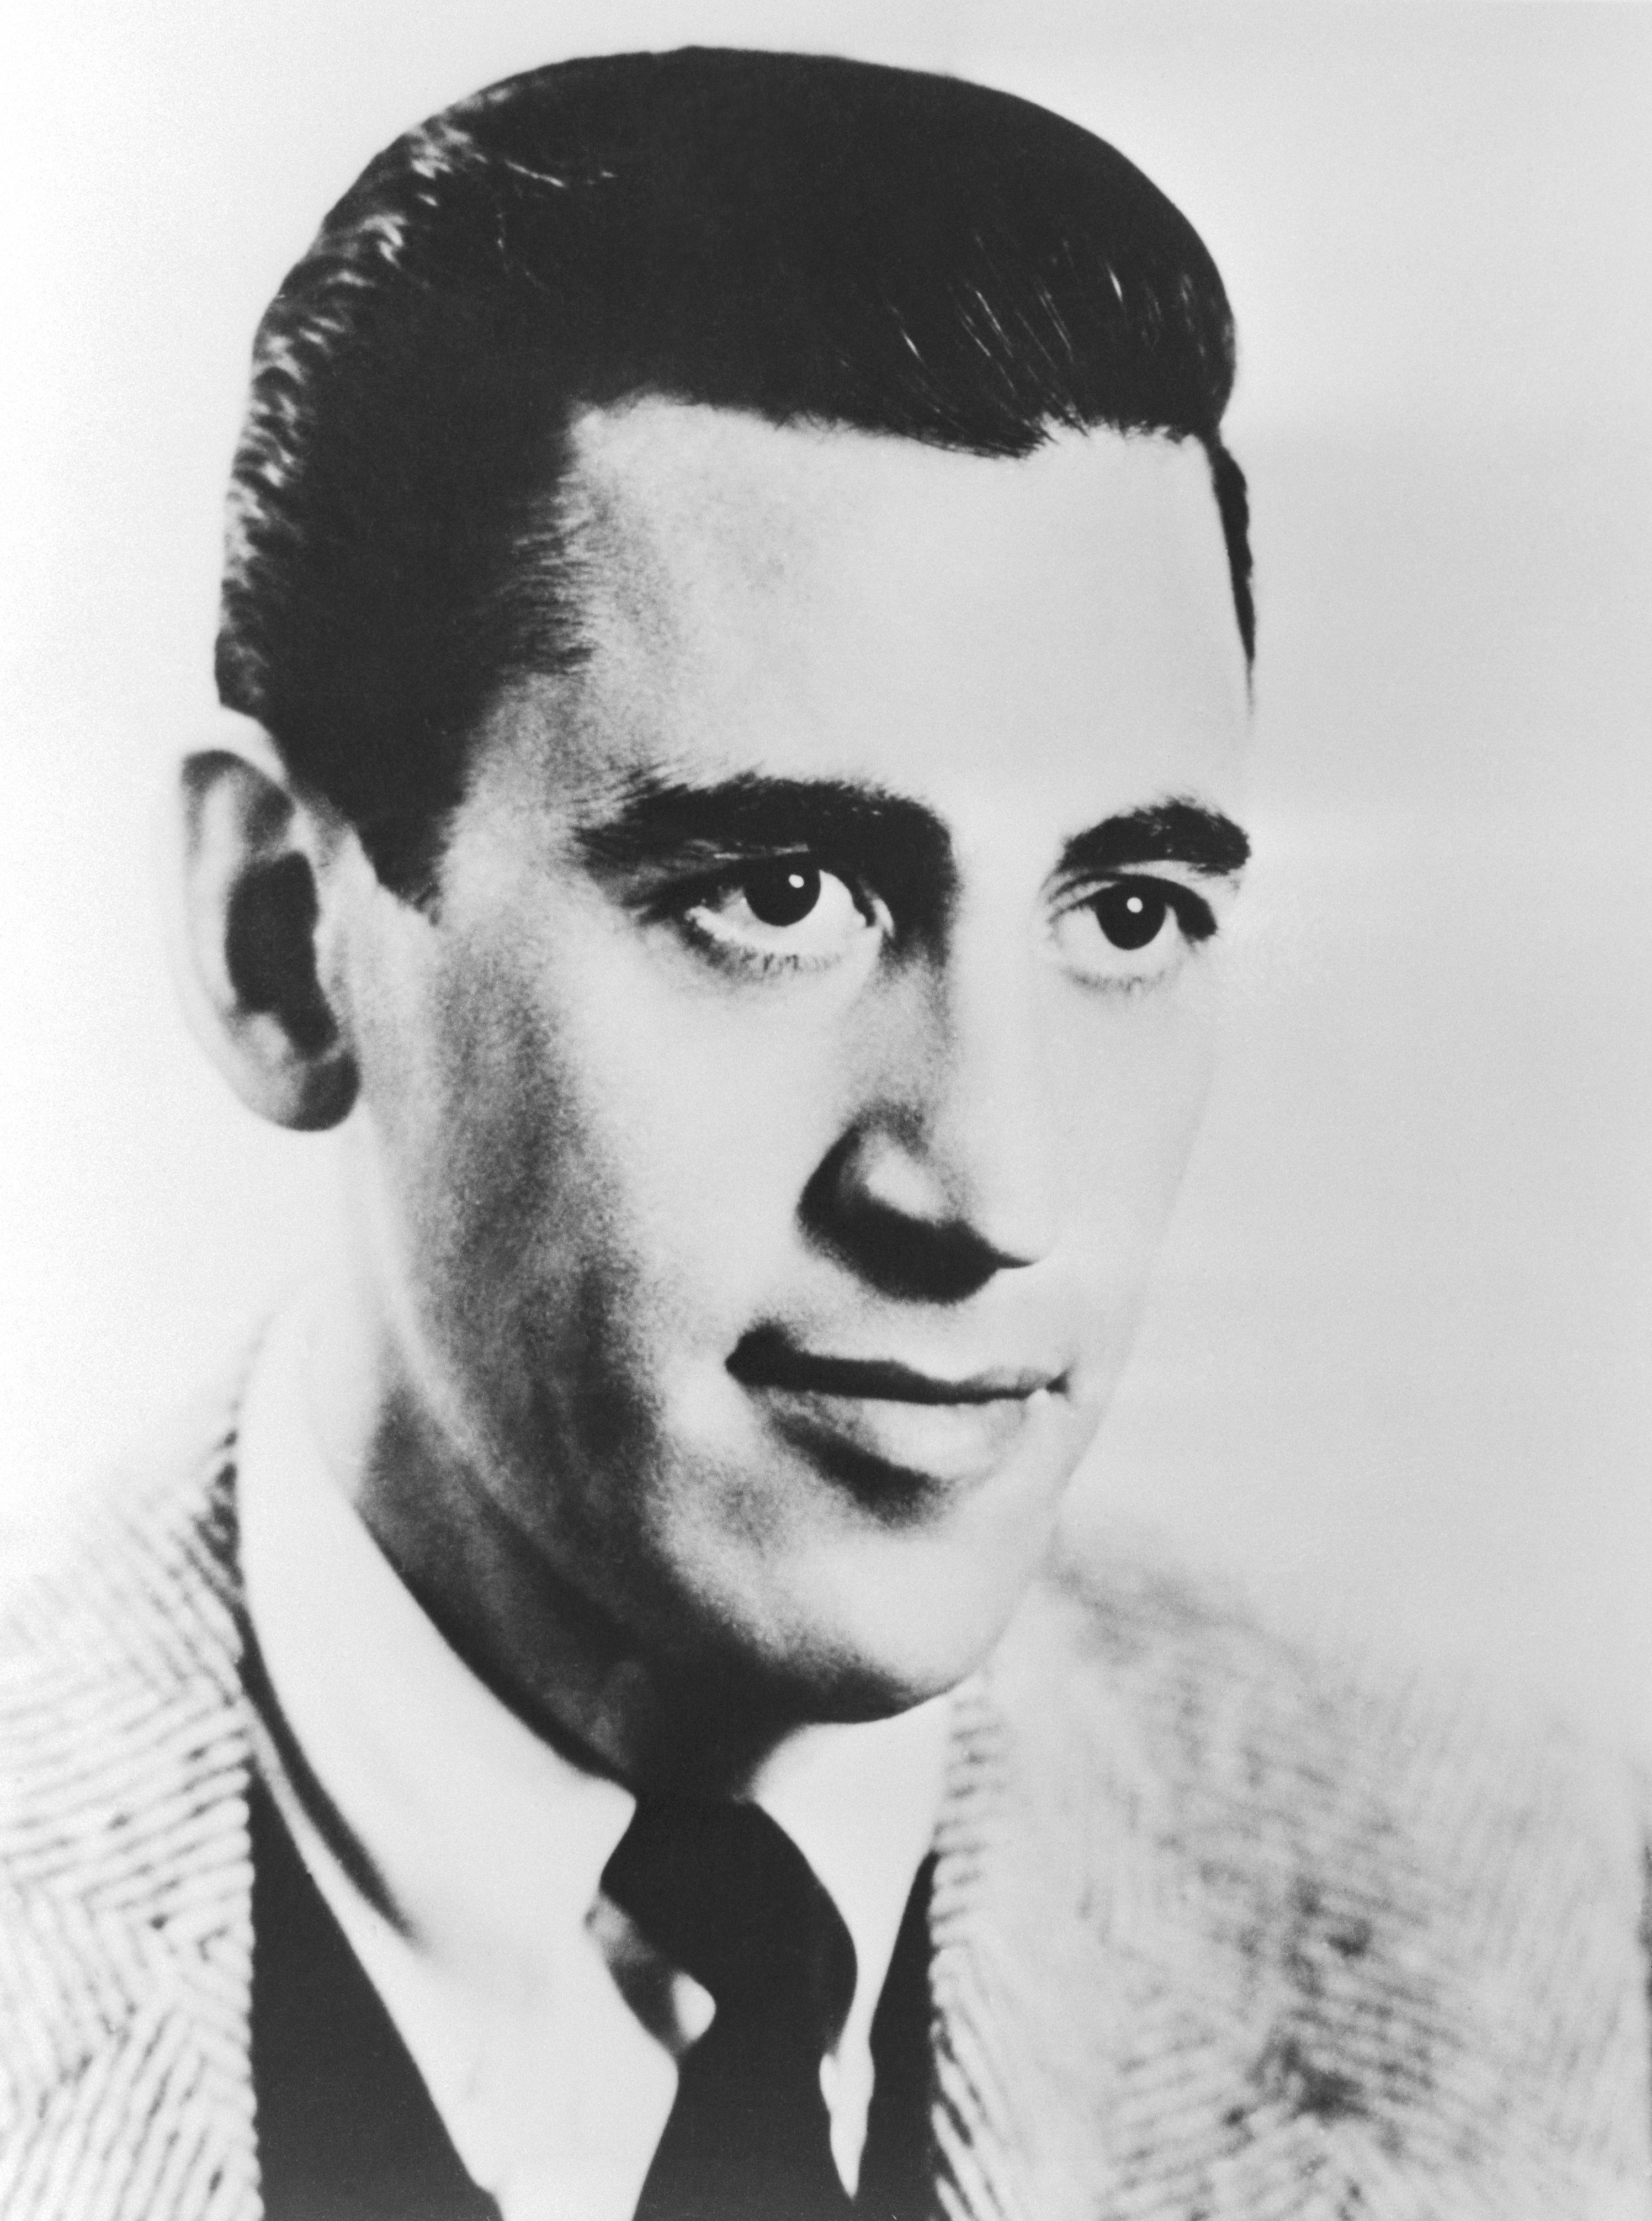 """""""Catcher in the Rye"""" author J.D. Salinger circa January 1951.   Source: Getty Images"""